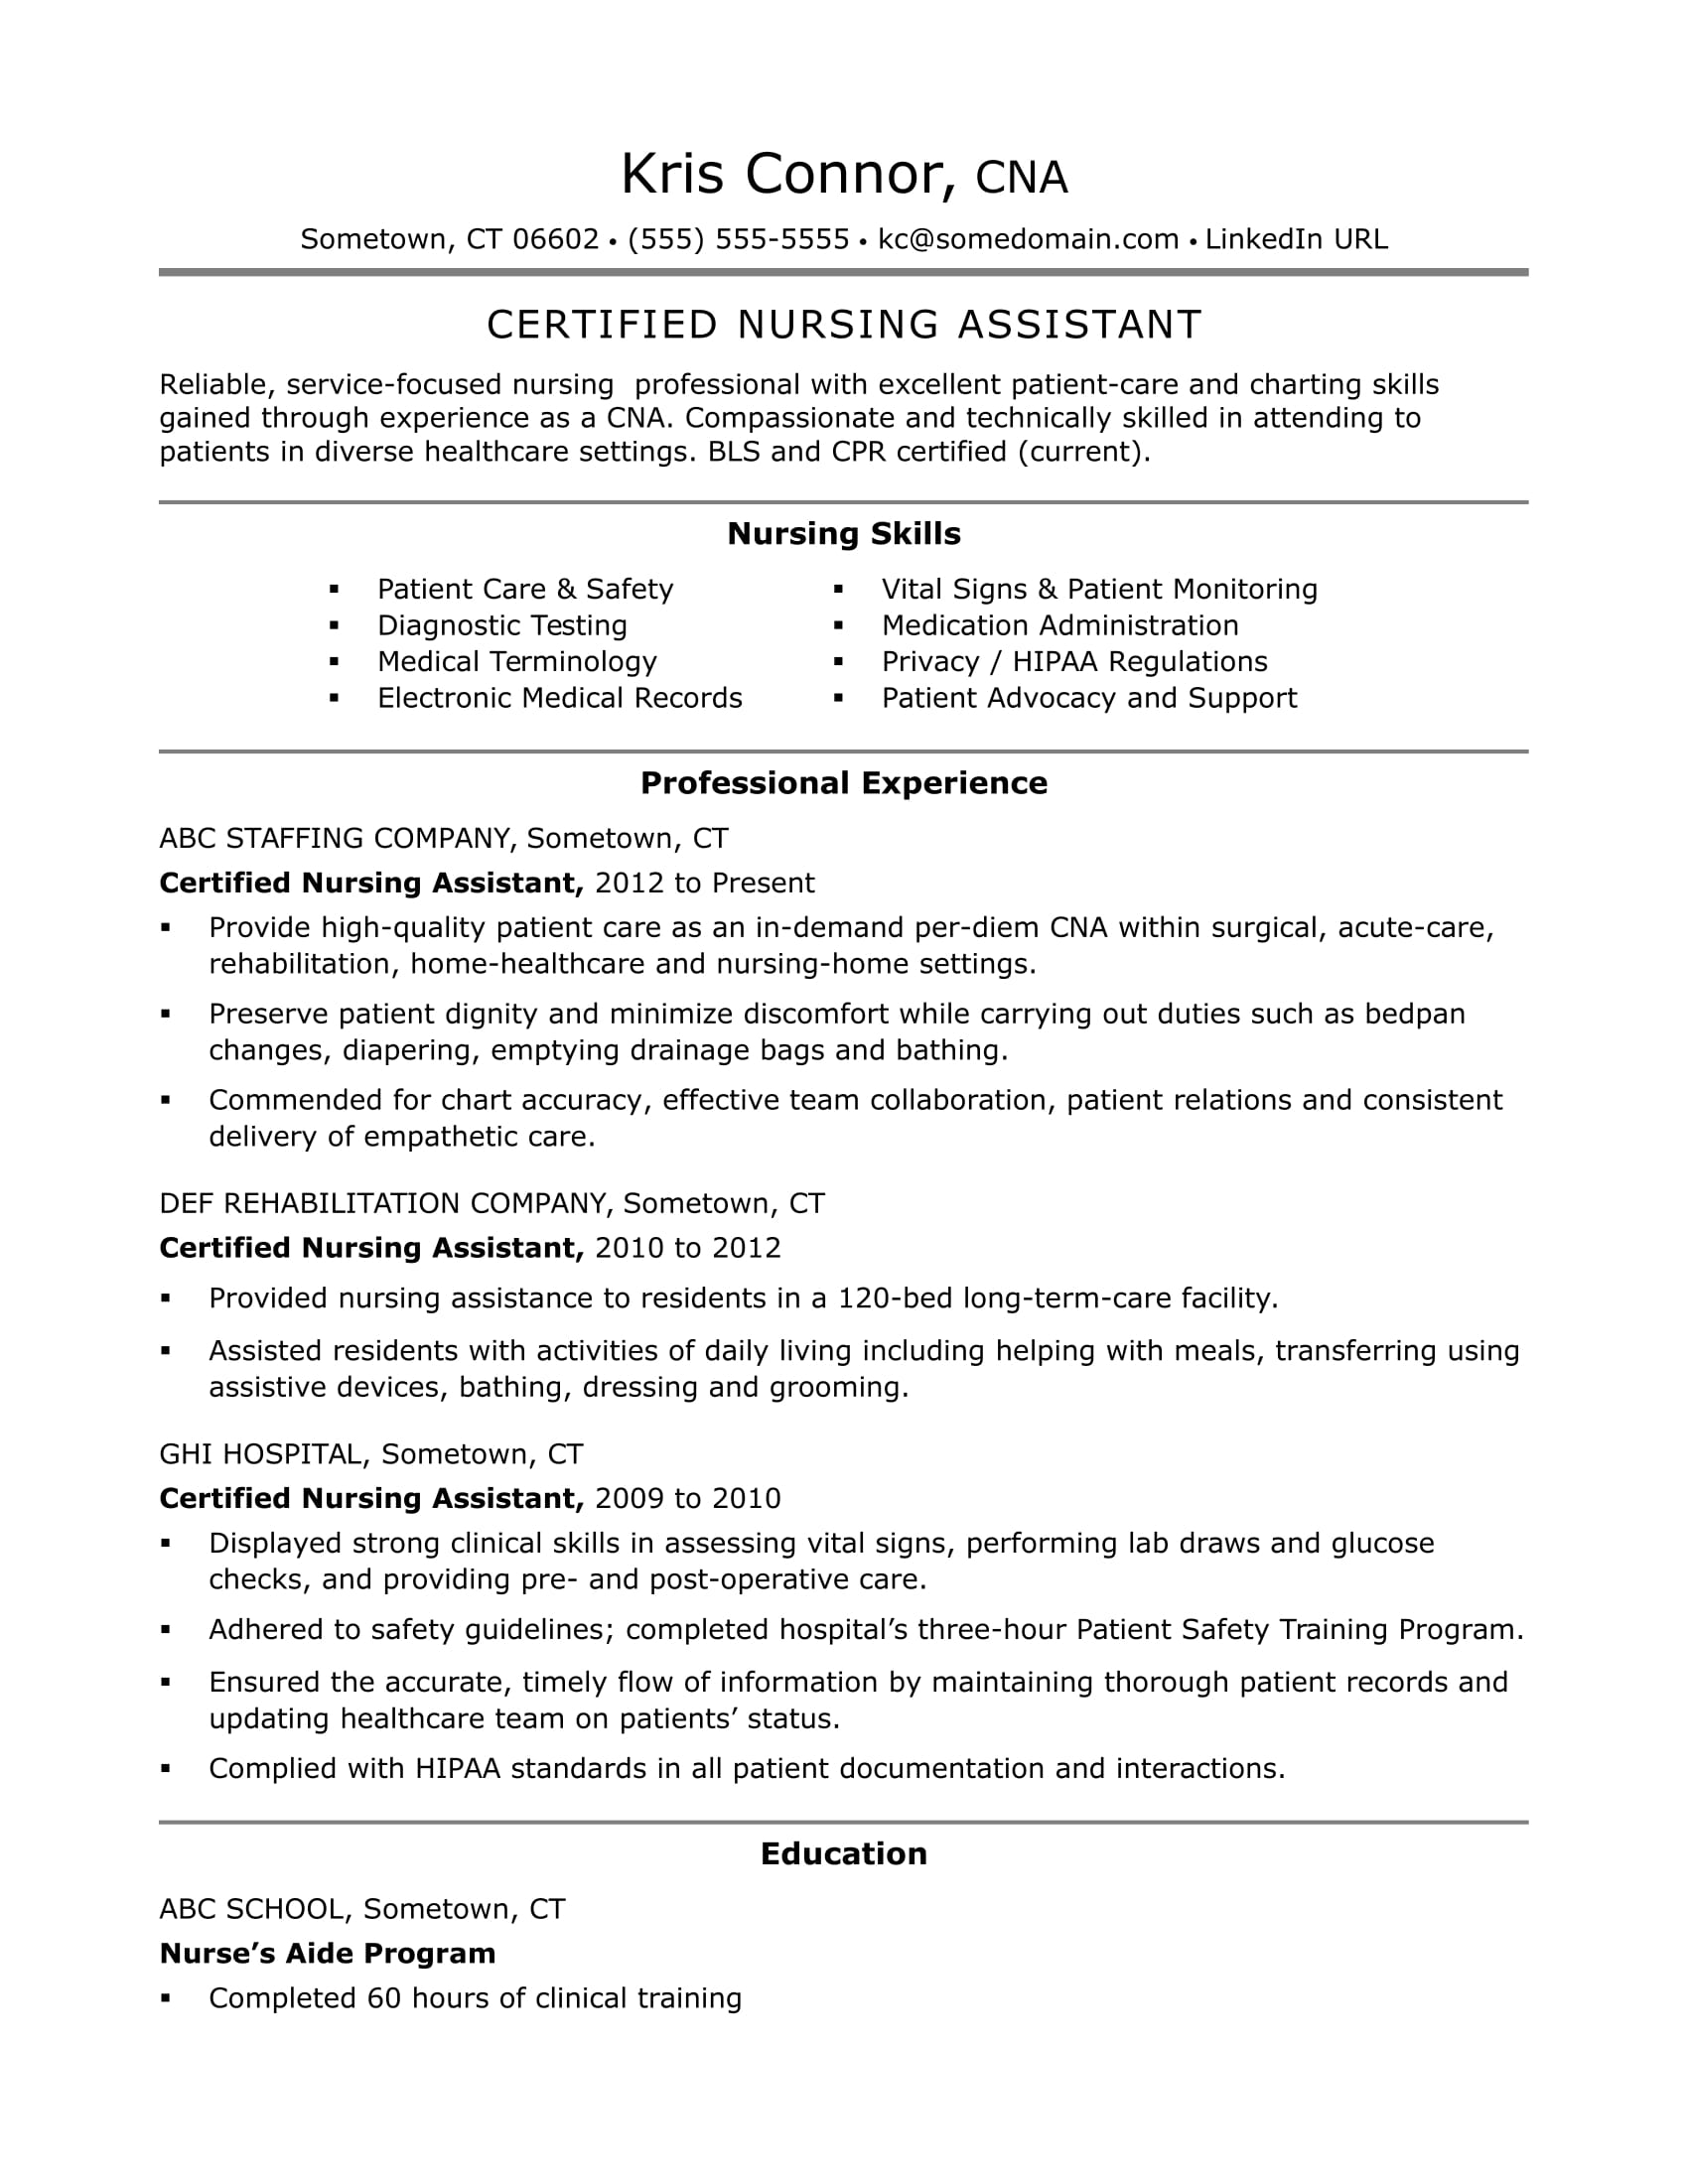 cna resume examples skills for cnas monster template free certified nursing assistant Resume Cna Resume Template Free